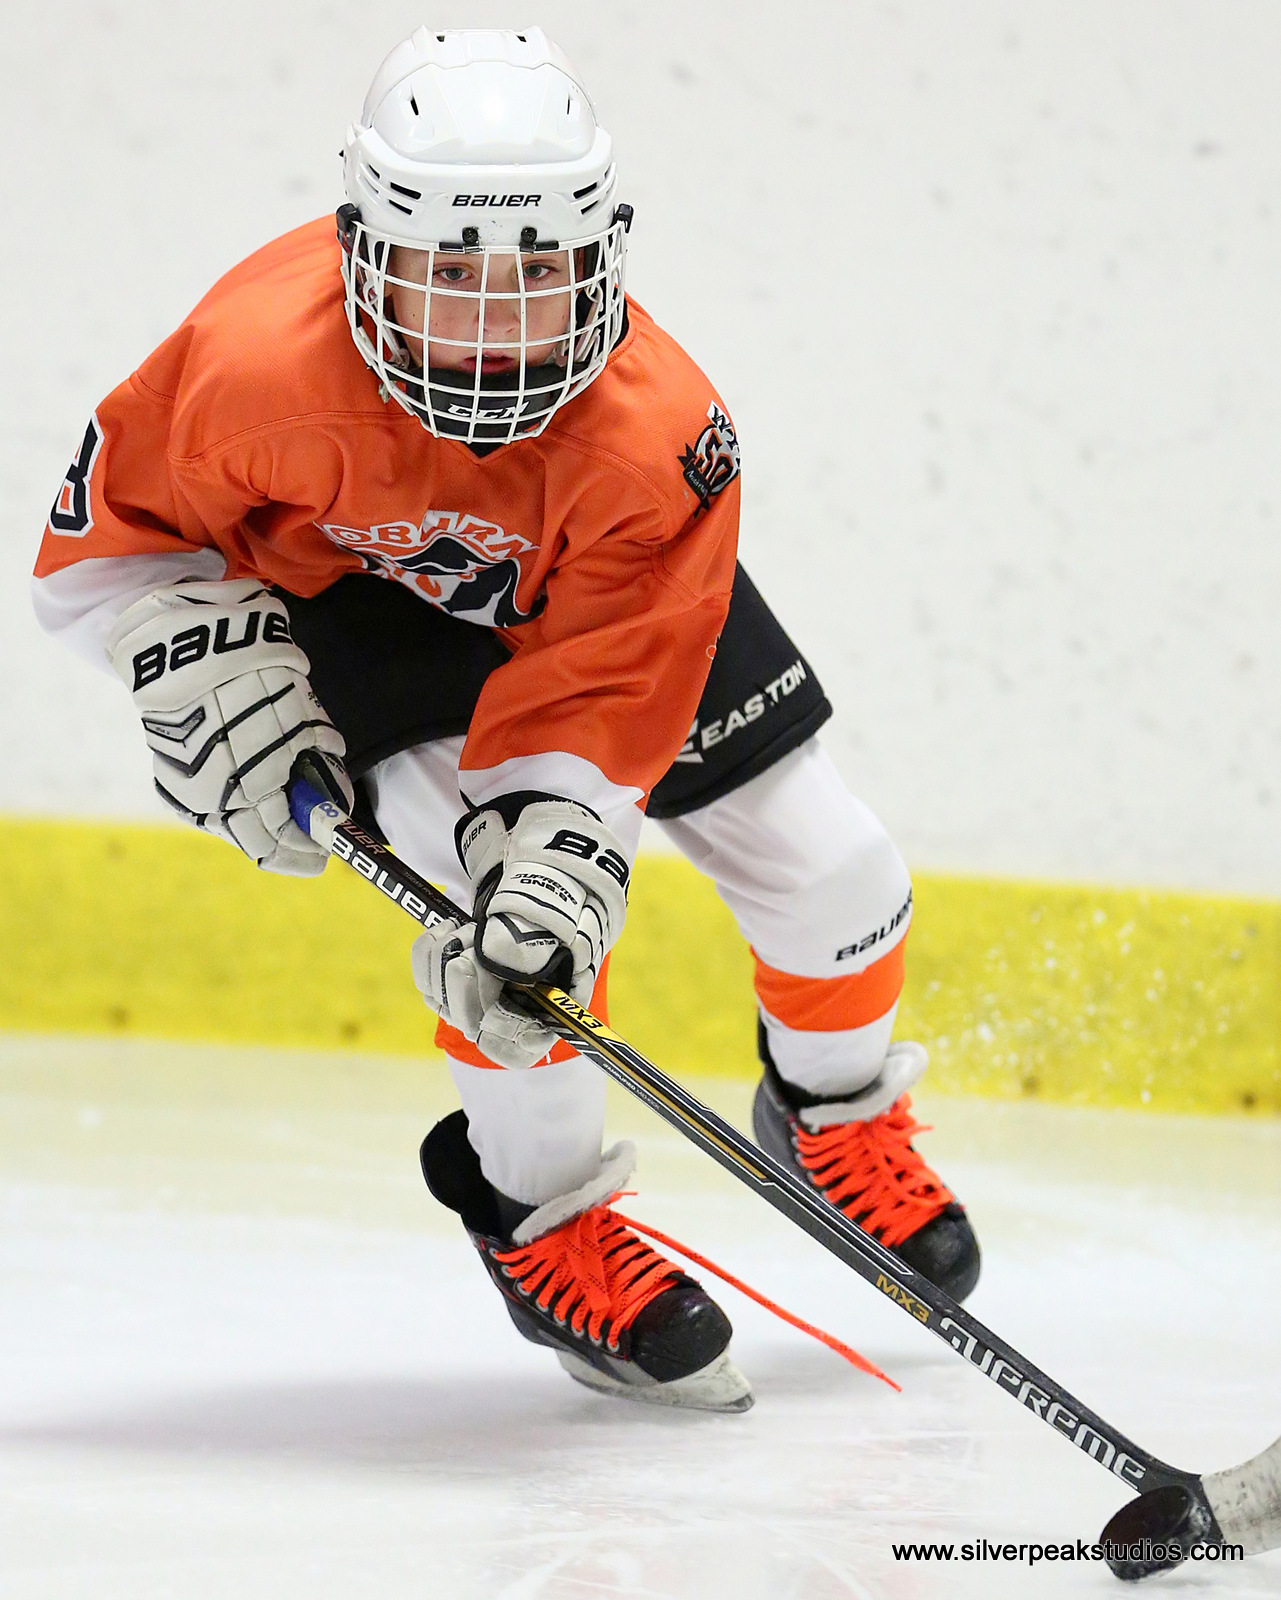 SilverPeak Studios Action Sports Hockey Squirt Photography Woburn